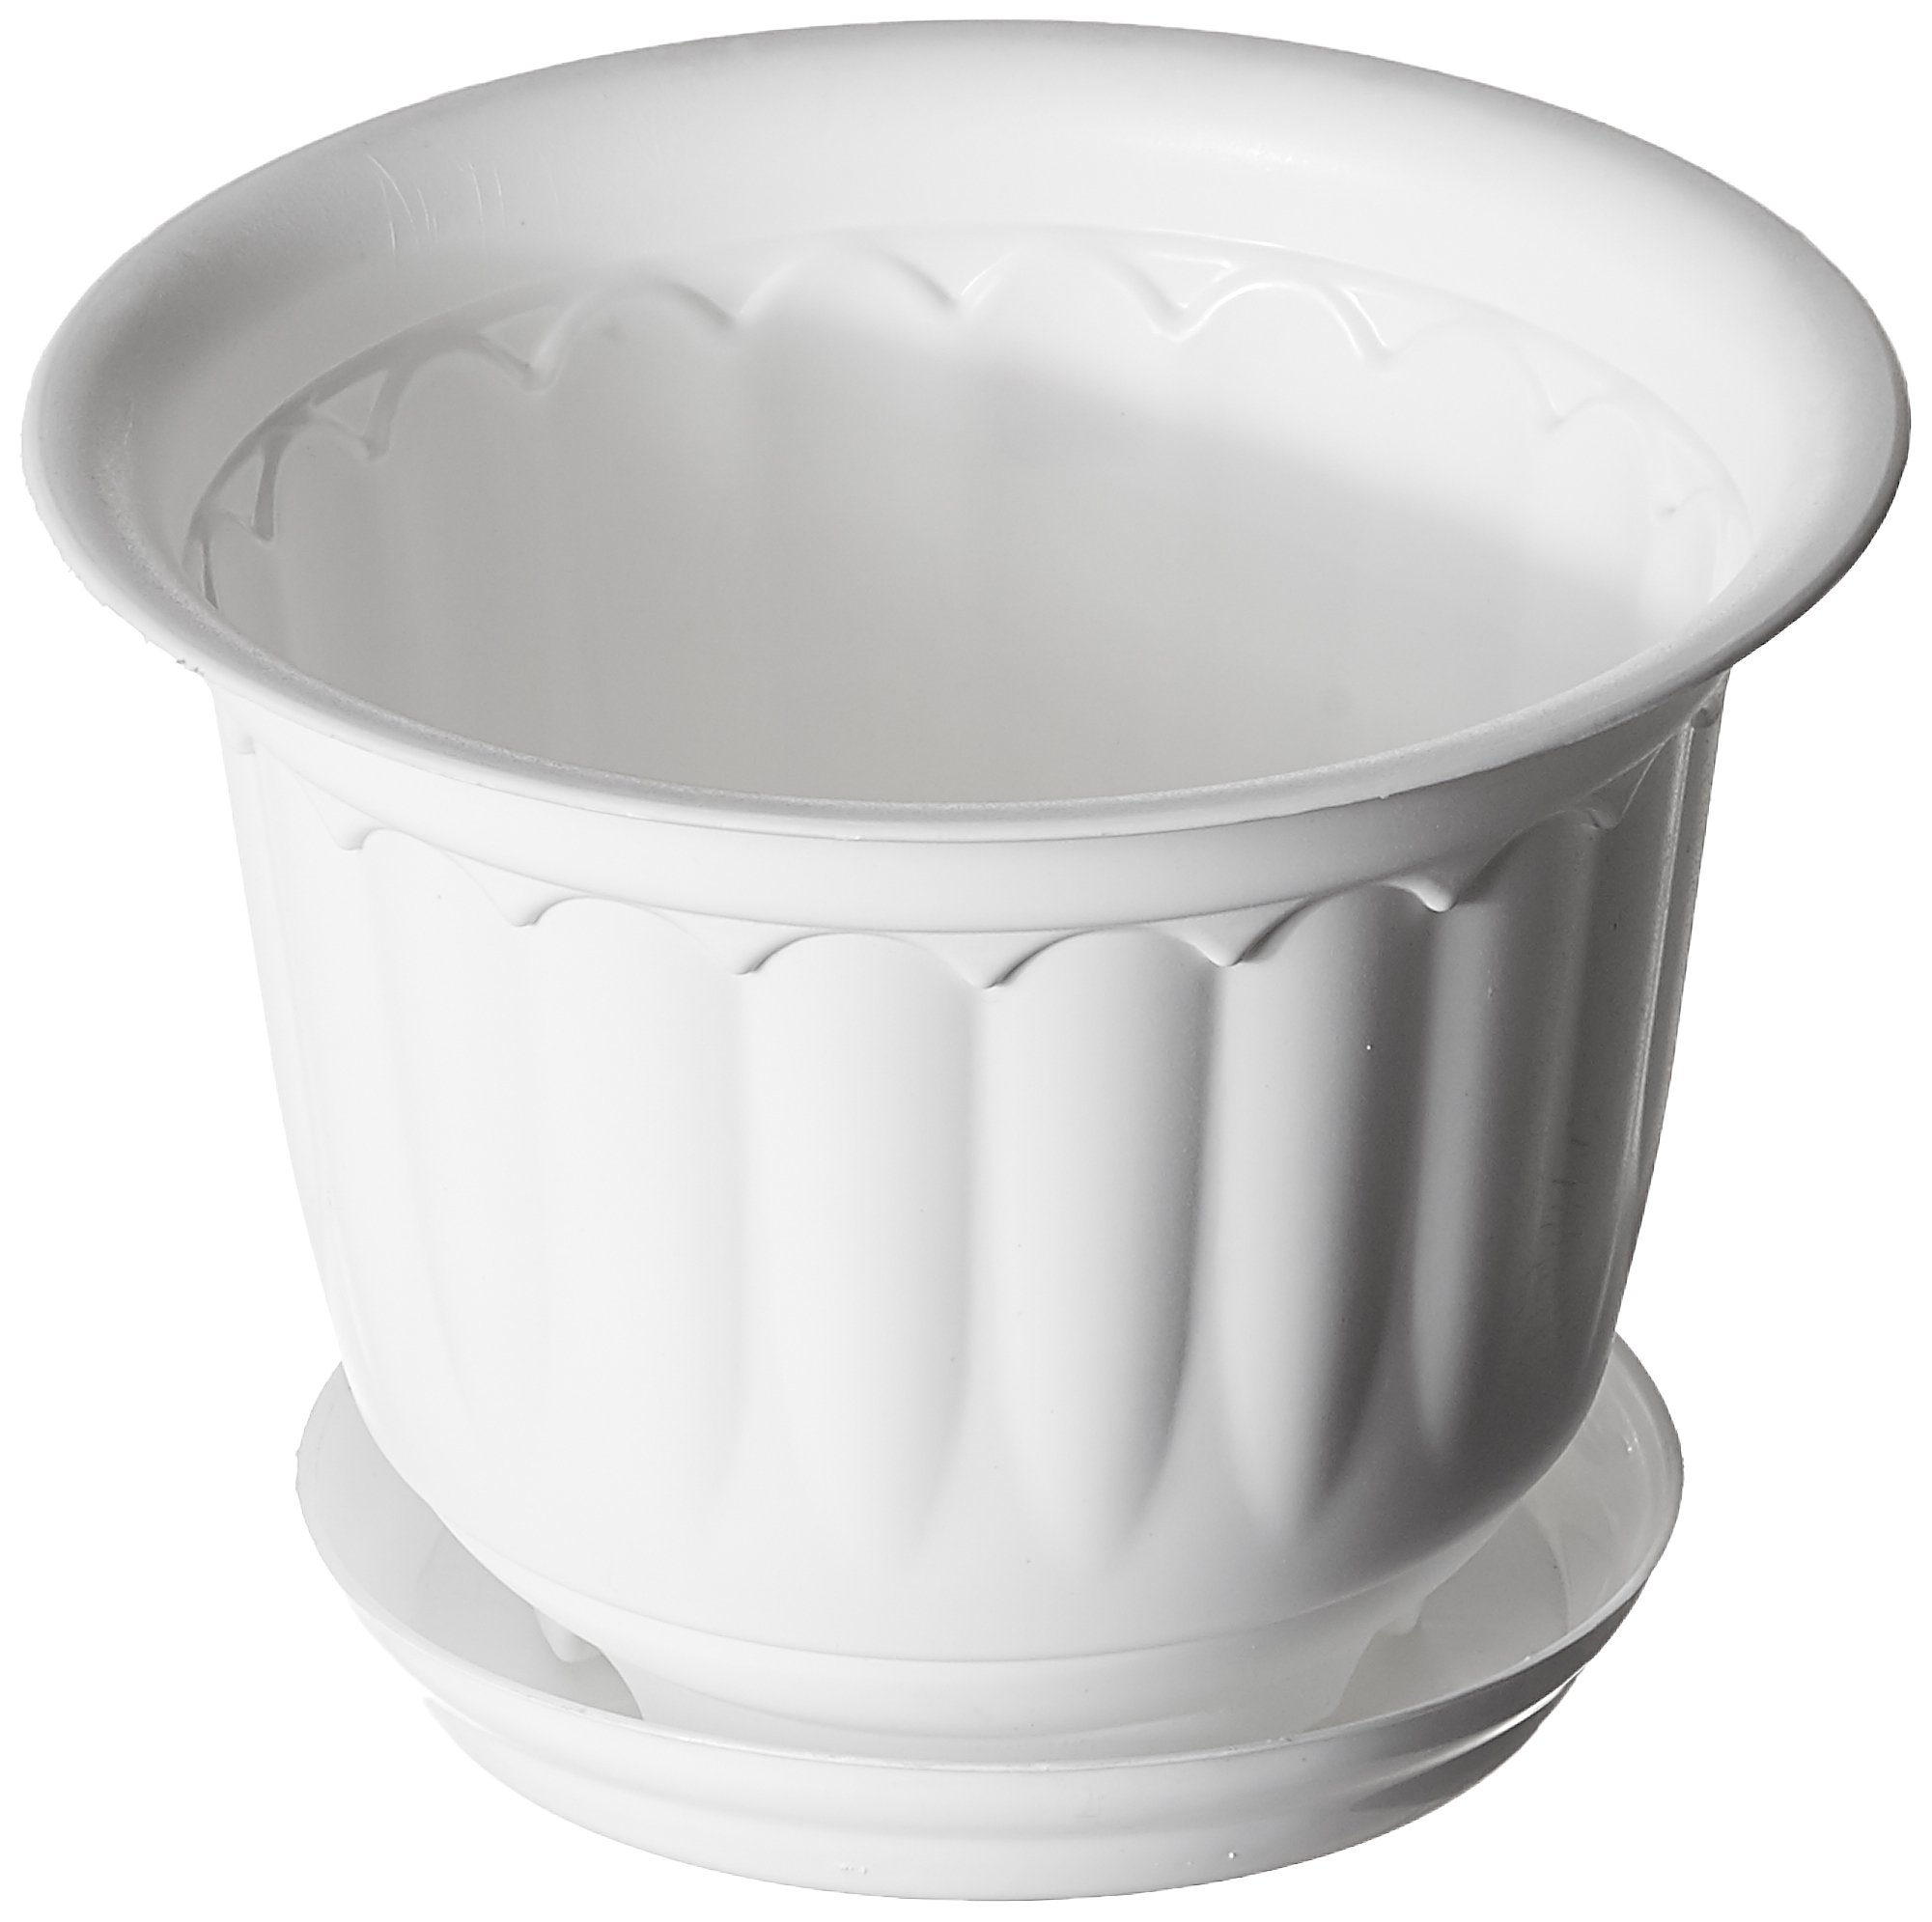 Gardens Need Jasmine Pot with Bottom Tray Set (10-inch, White, 3-Pieces) product image